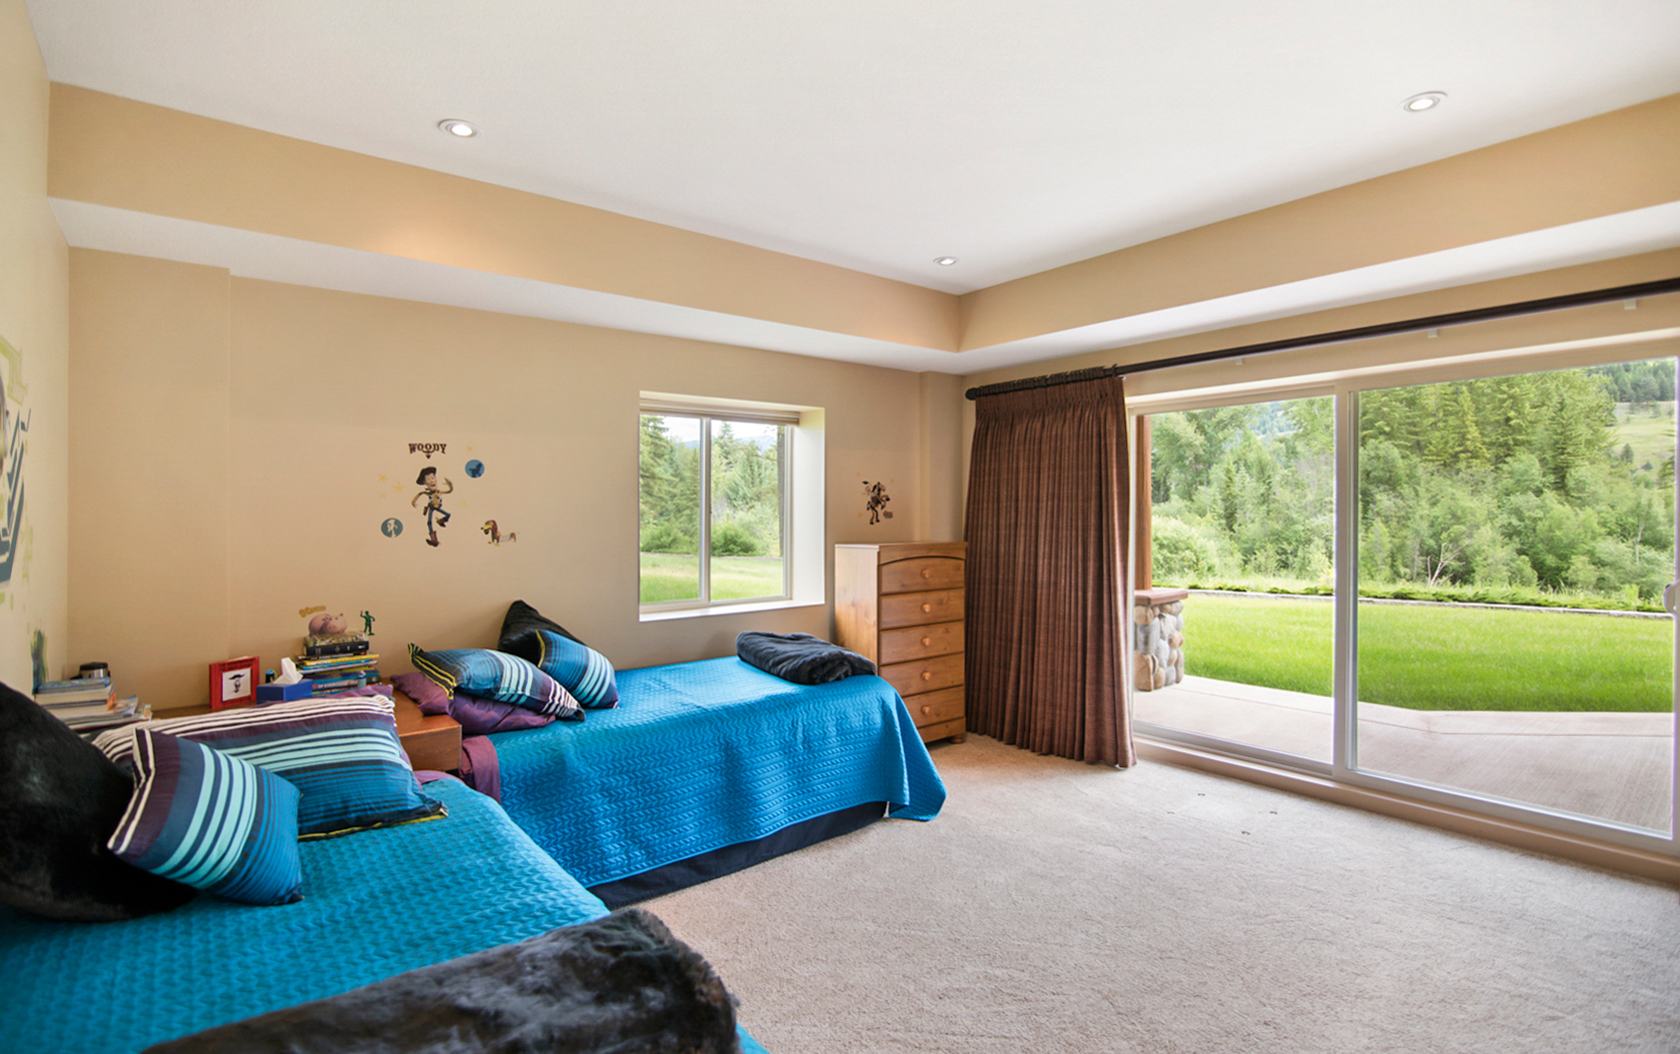 Kudu House Willow Springs Elizabeth McQueen ReMax Realty